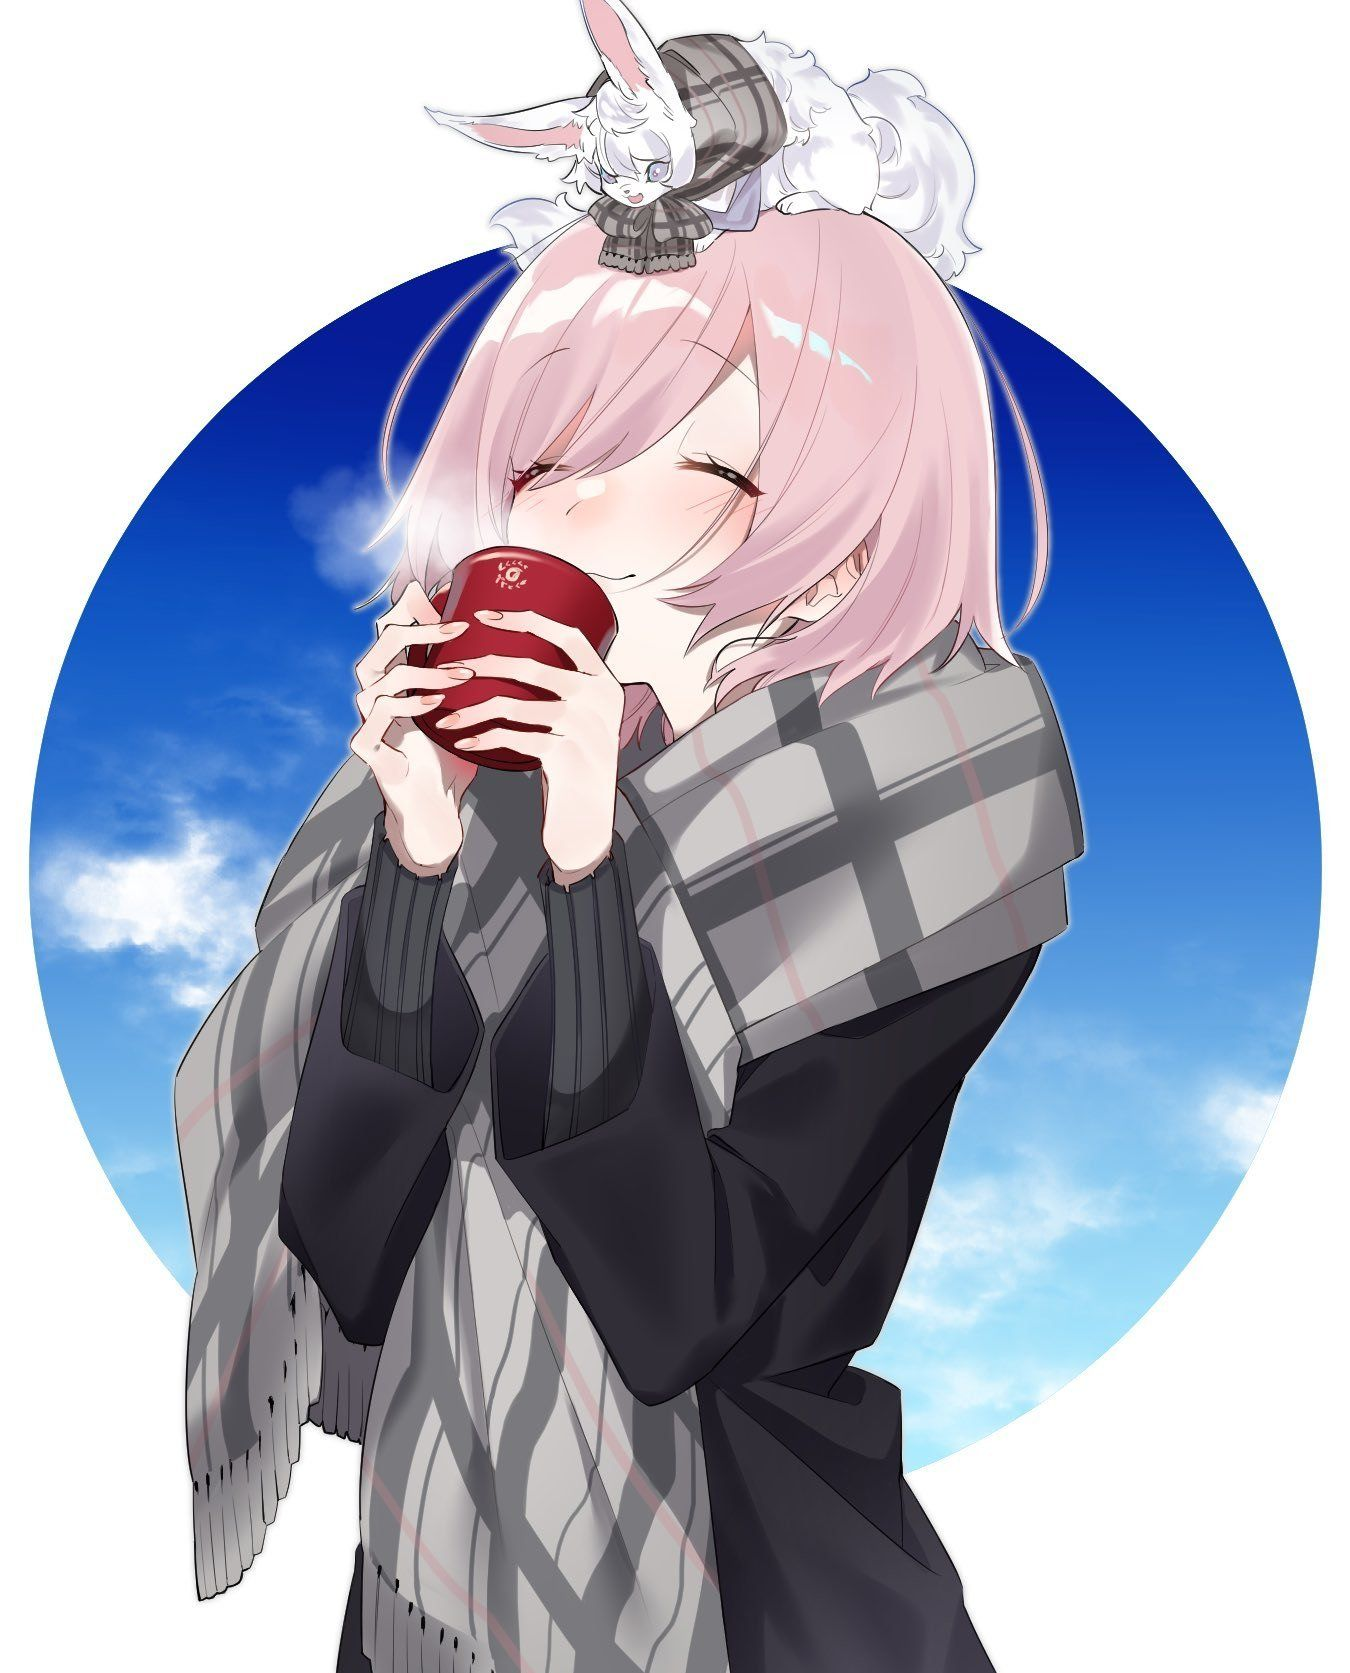 mashu looks excited for some coffee